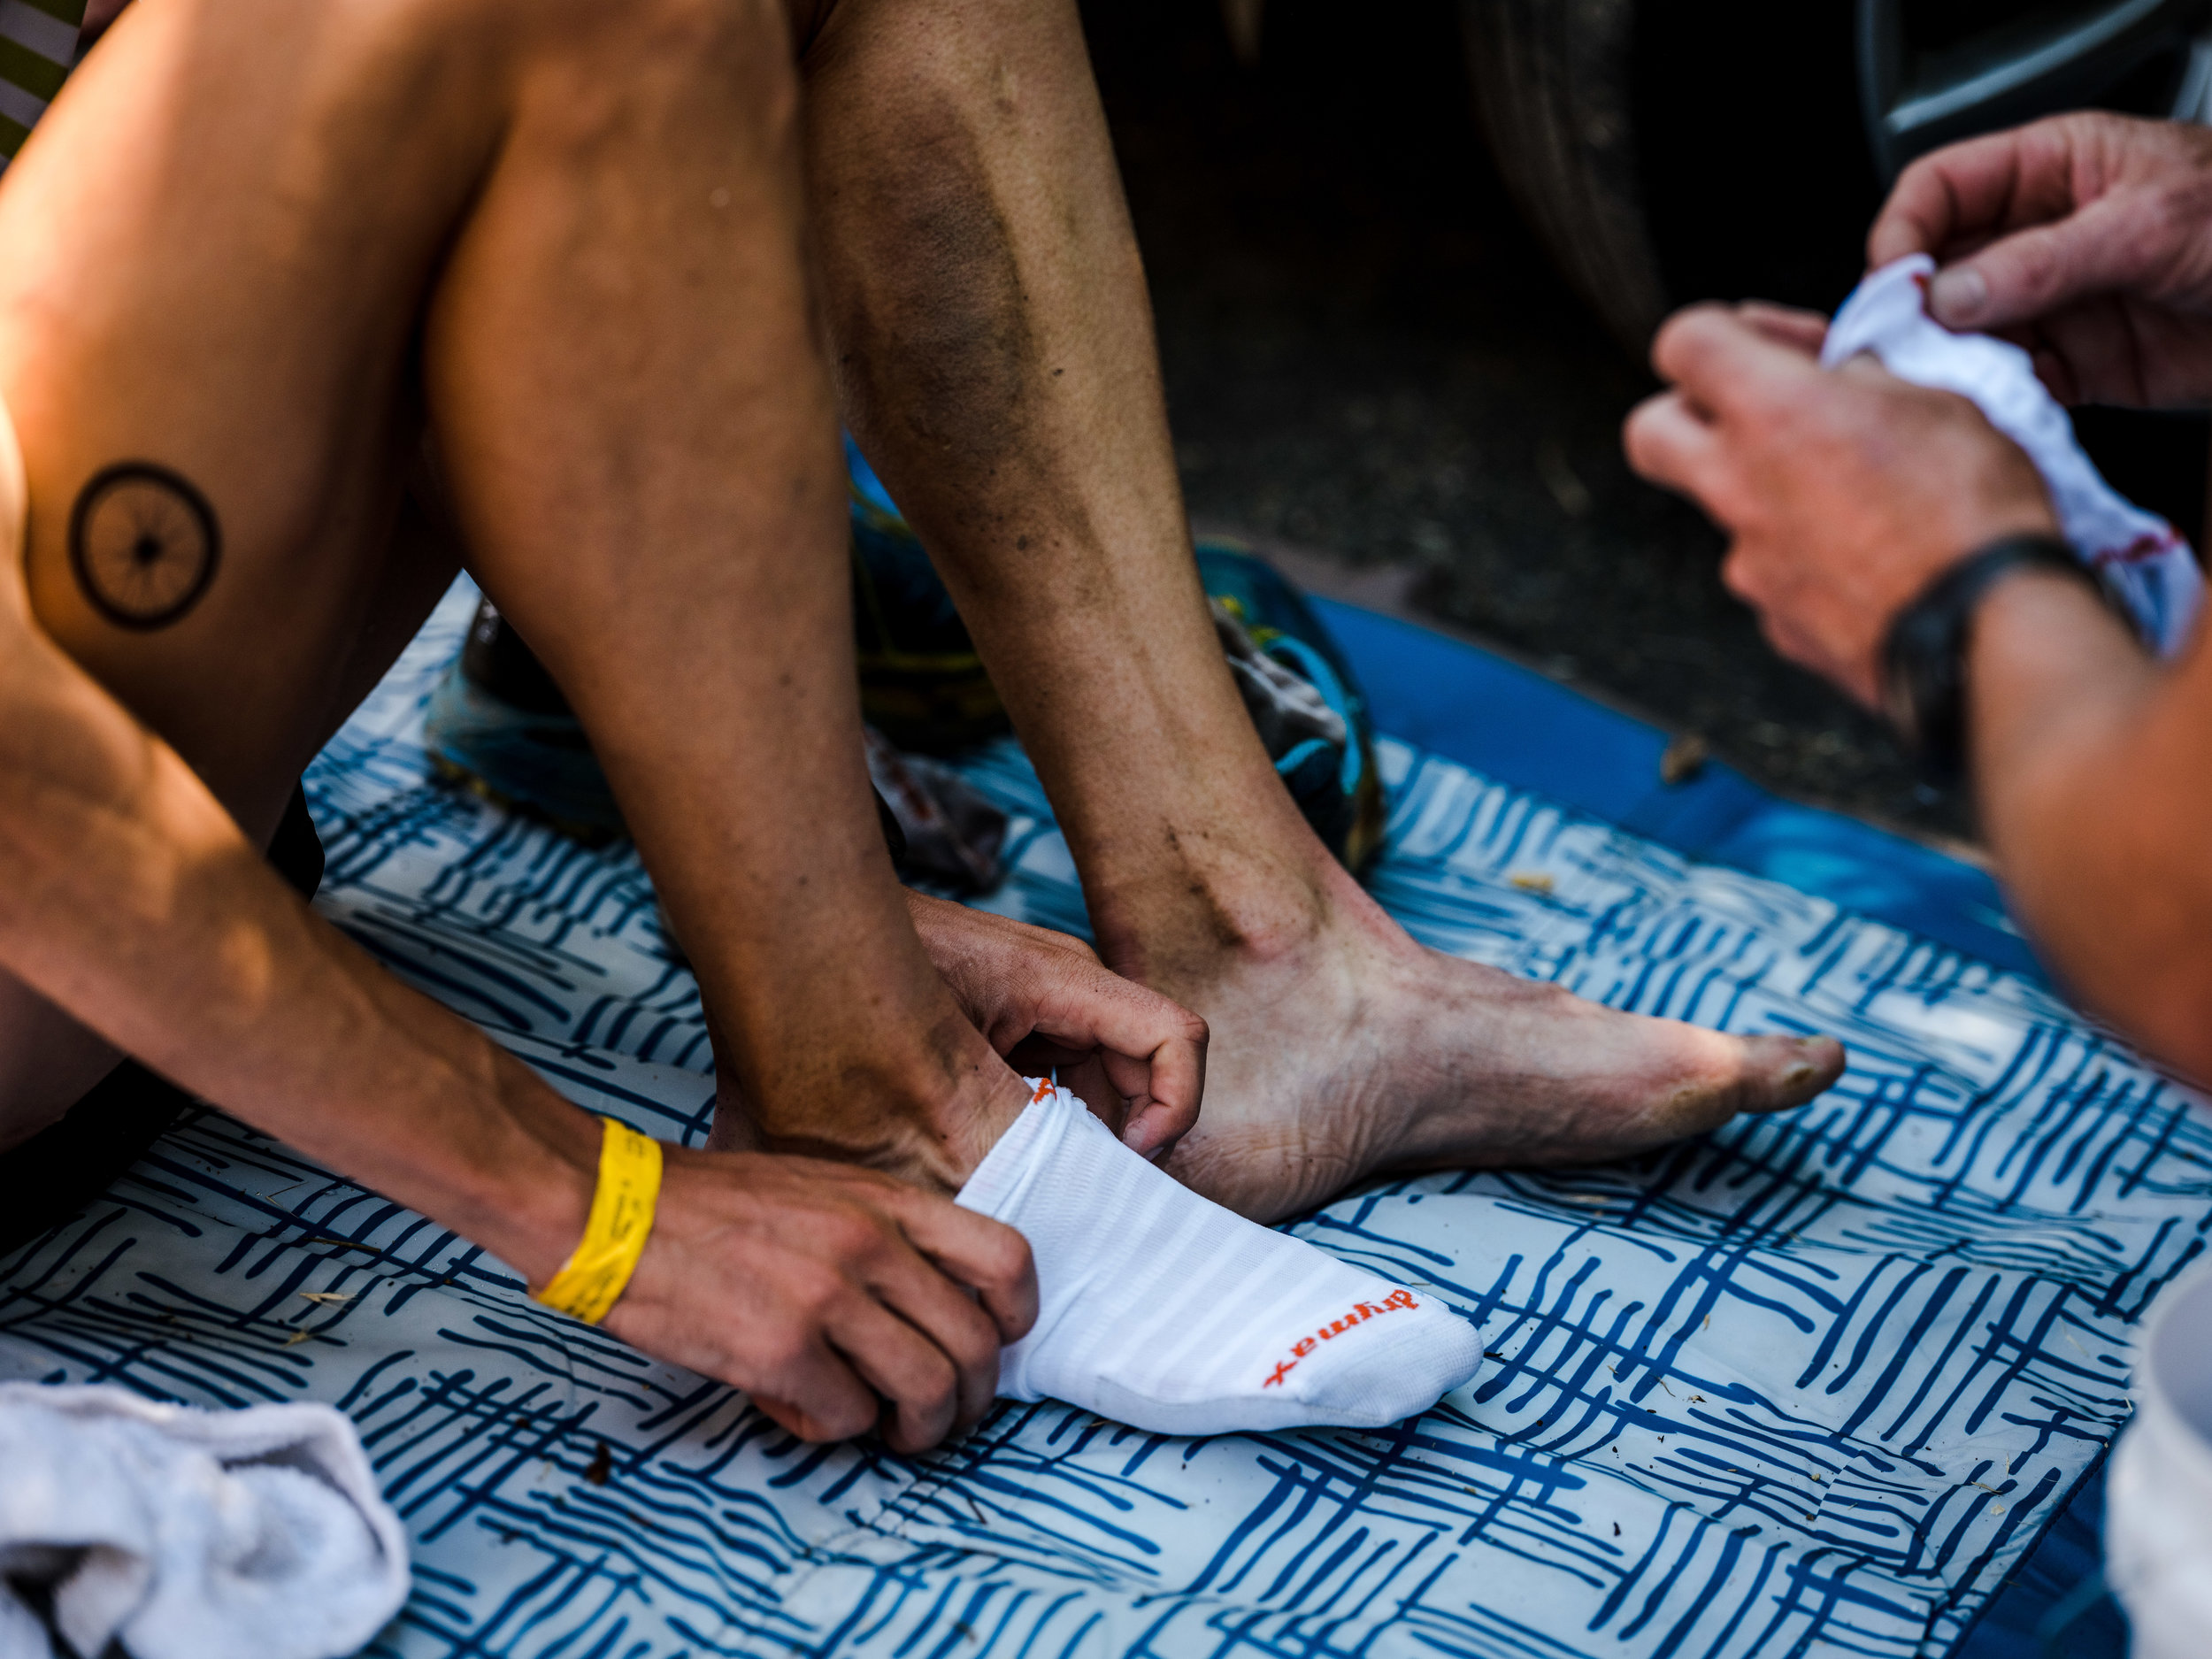 Jim Walmsley_Putting on Sock_Western States_Ryland West.jpg